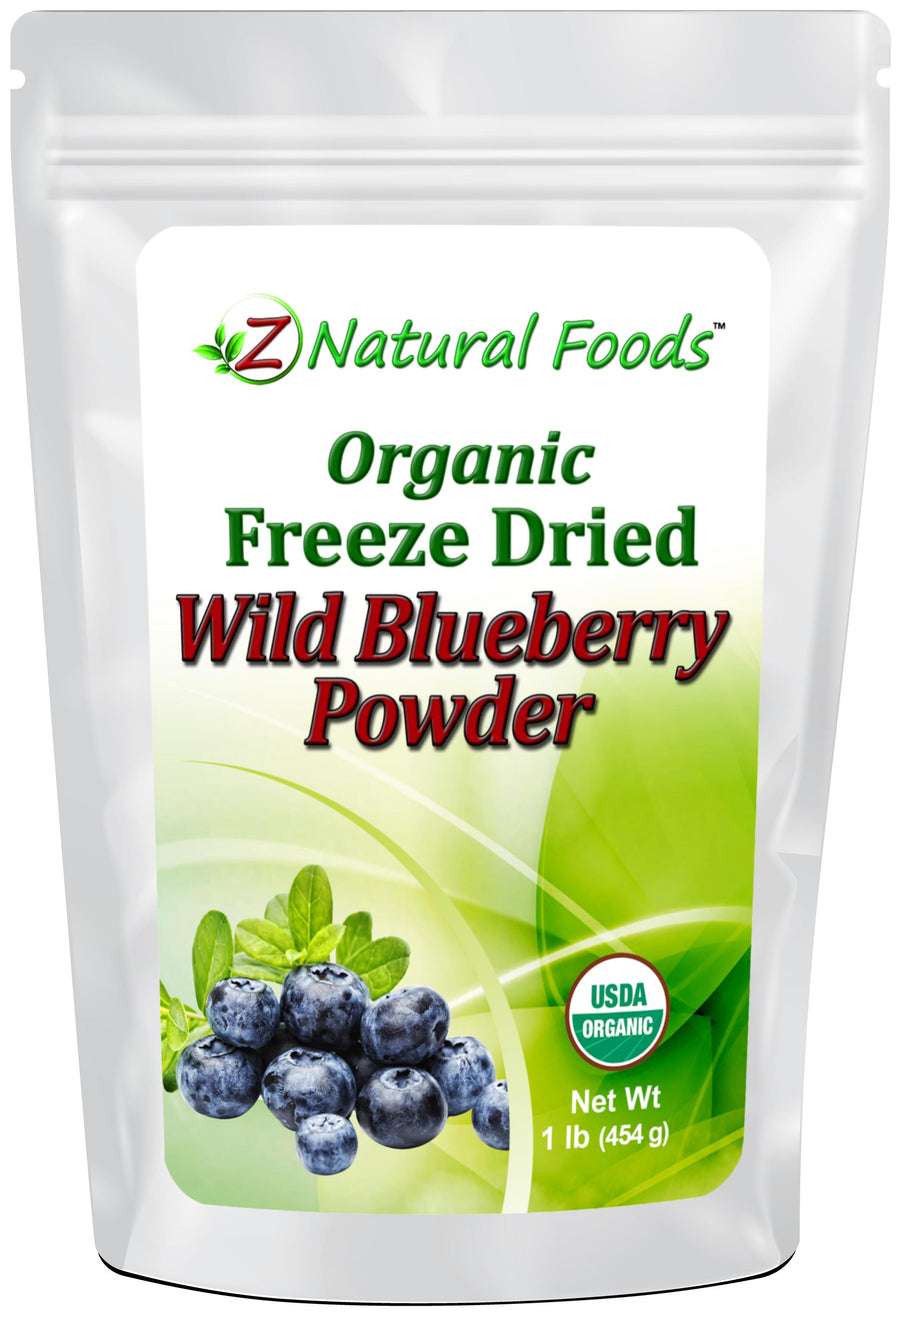 Blueberry Powder - Organic Freeze Dried Fruit Powders Z Natural Foods 1 lb